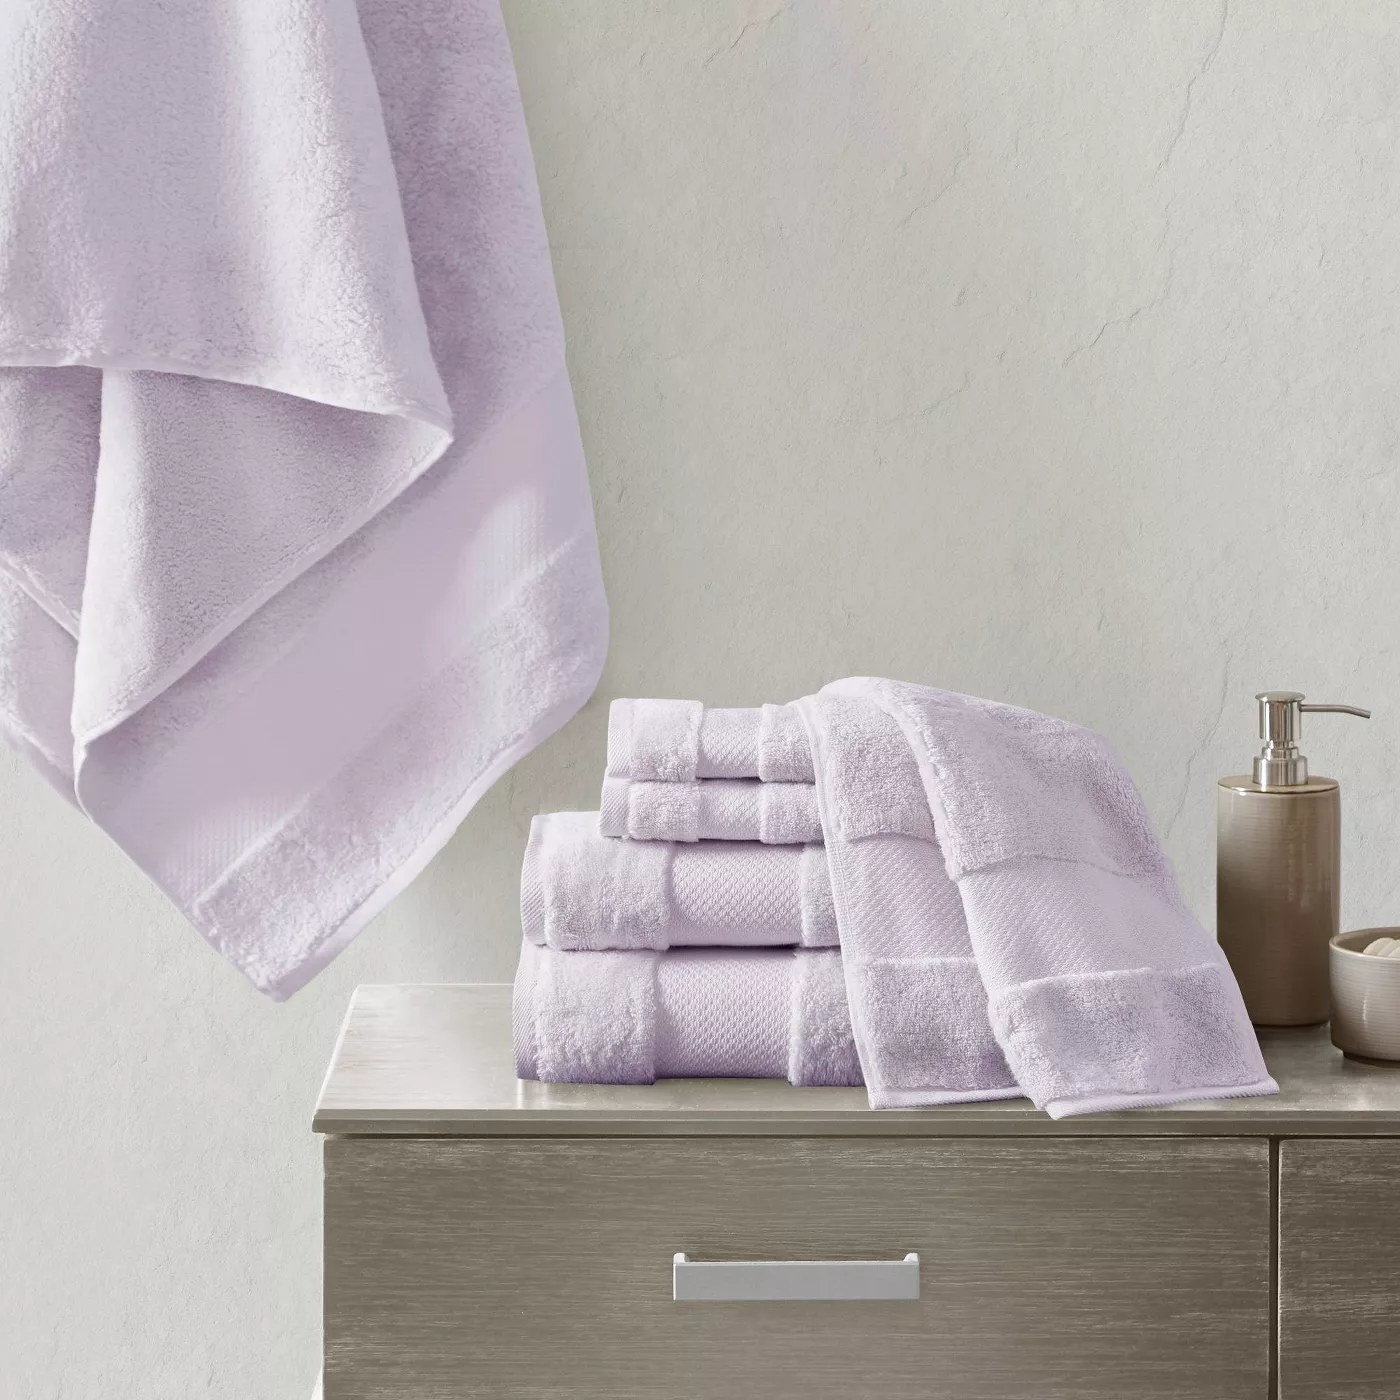 The towel set in lilac in a bathroom